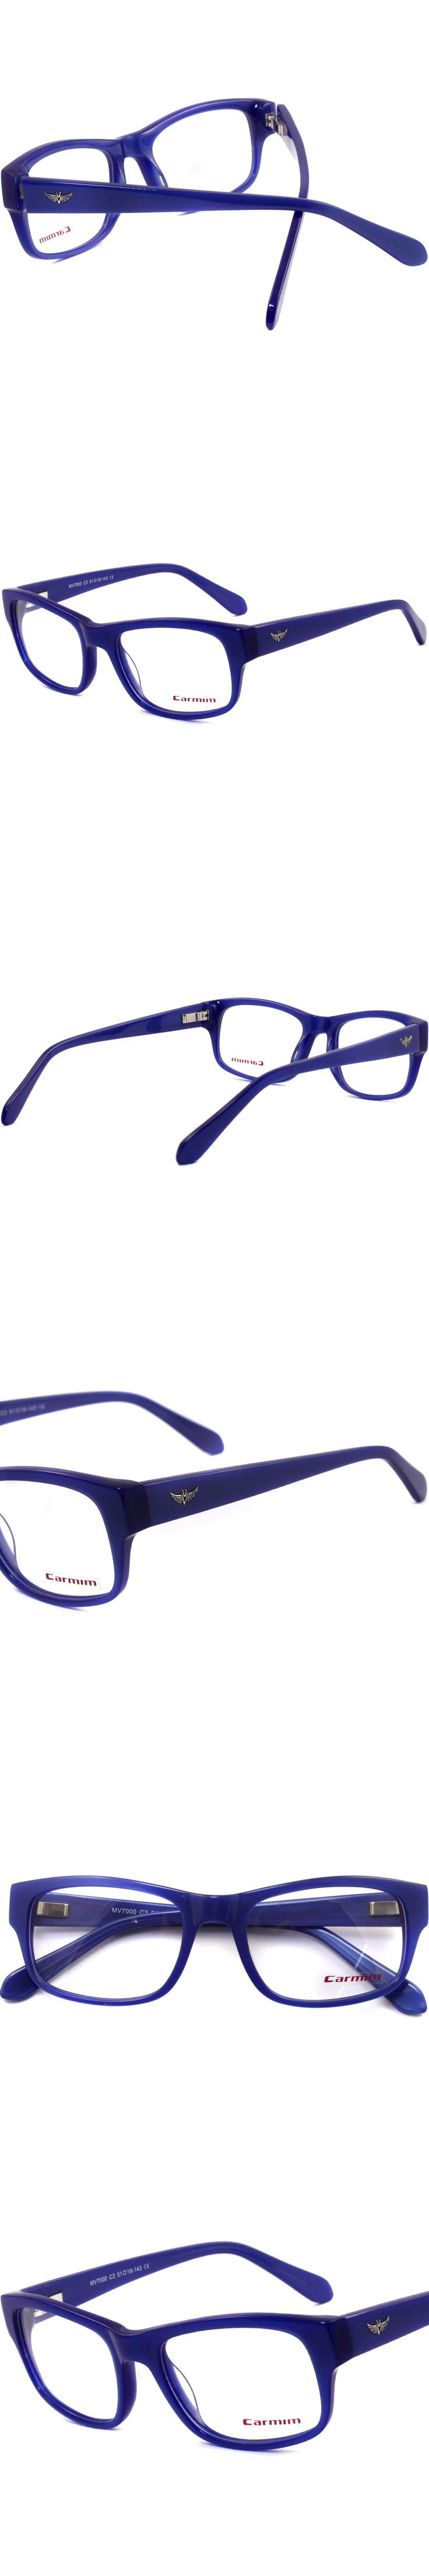 Free Shipping Blue Light Cute Glasses Computer Glasses BMV7000